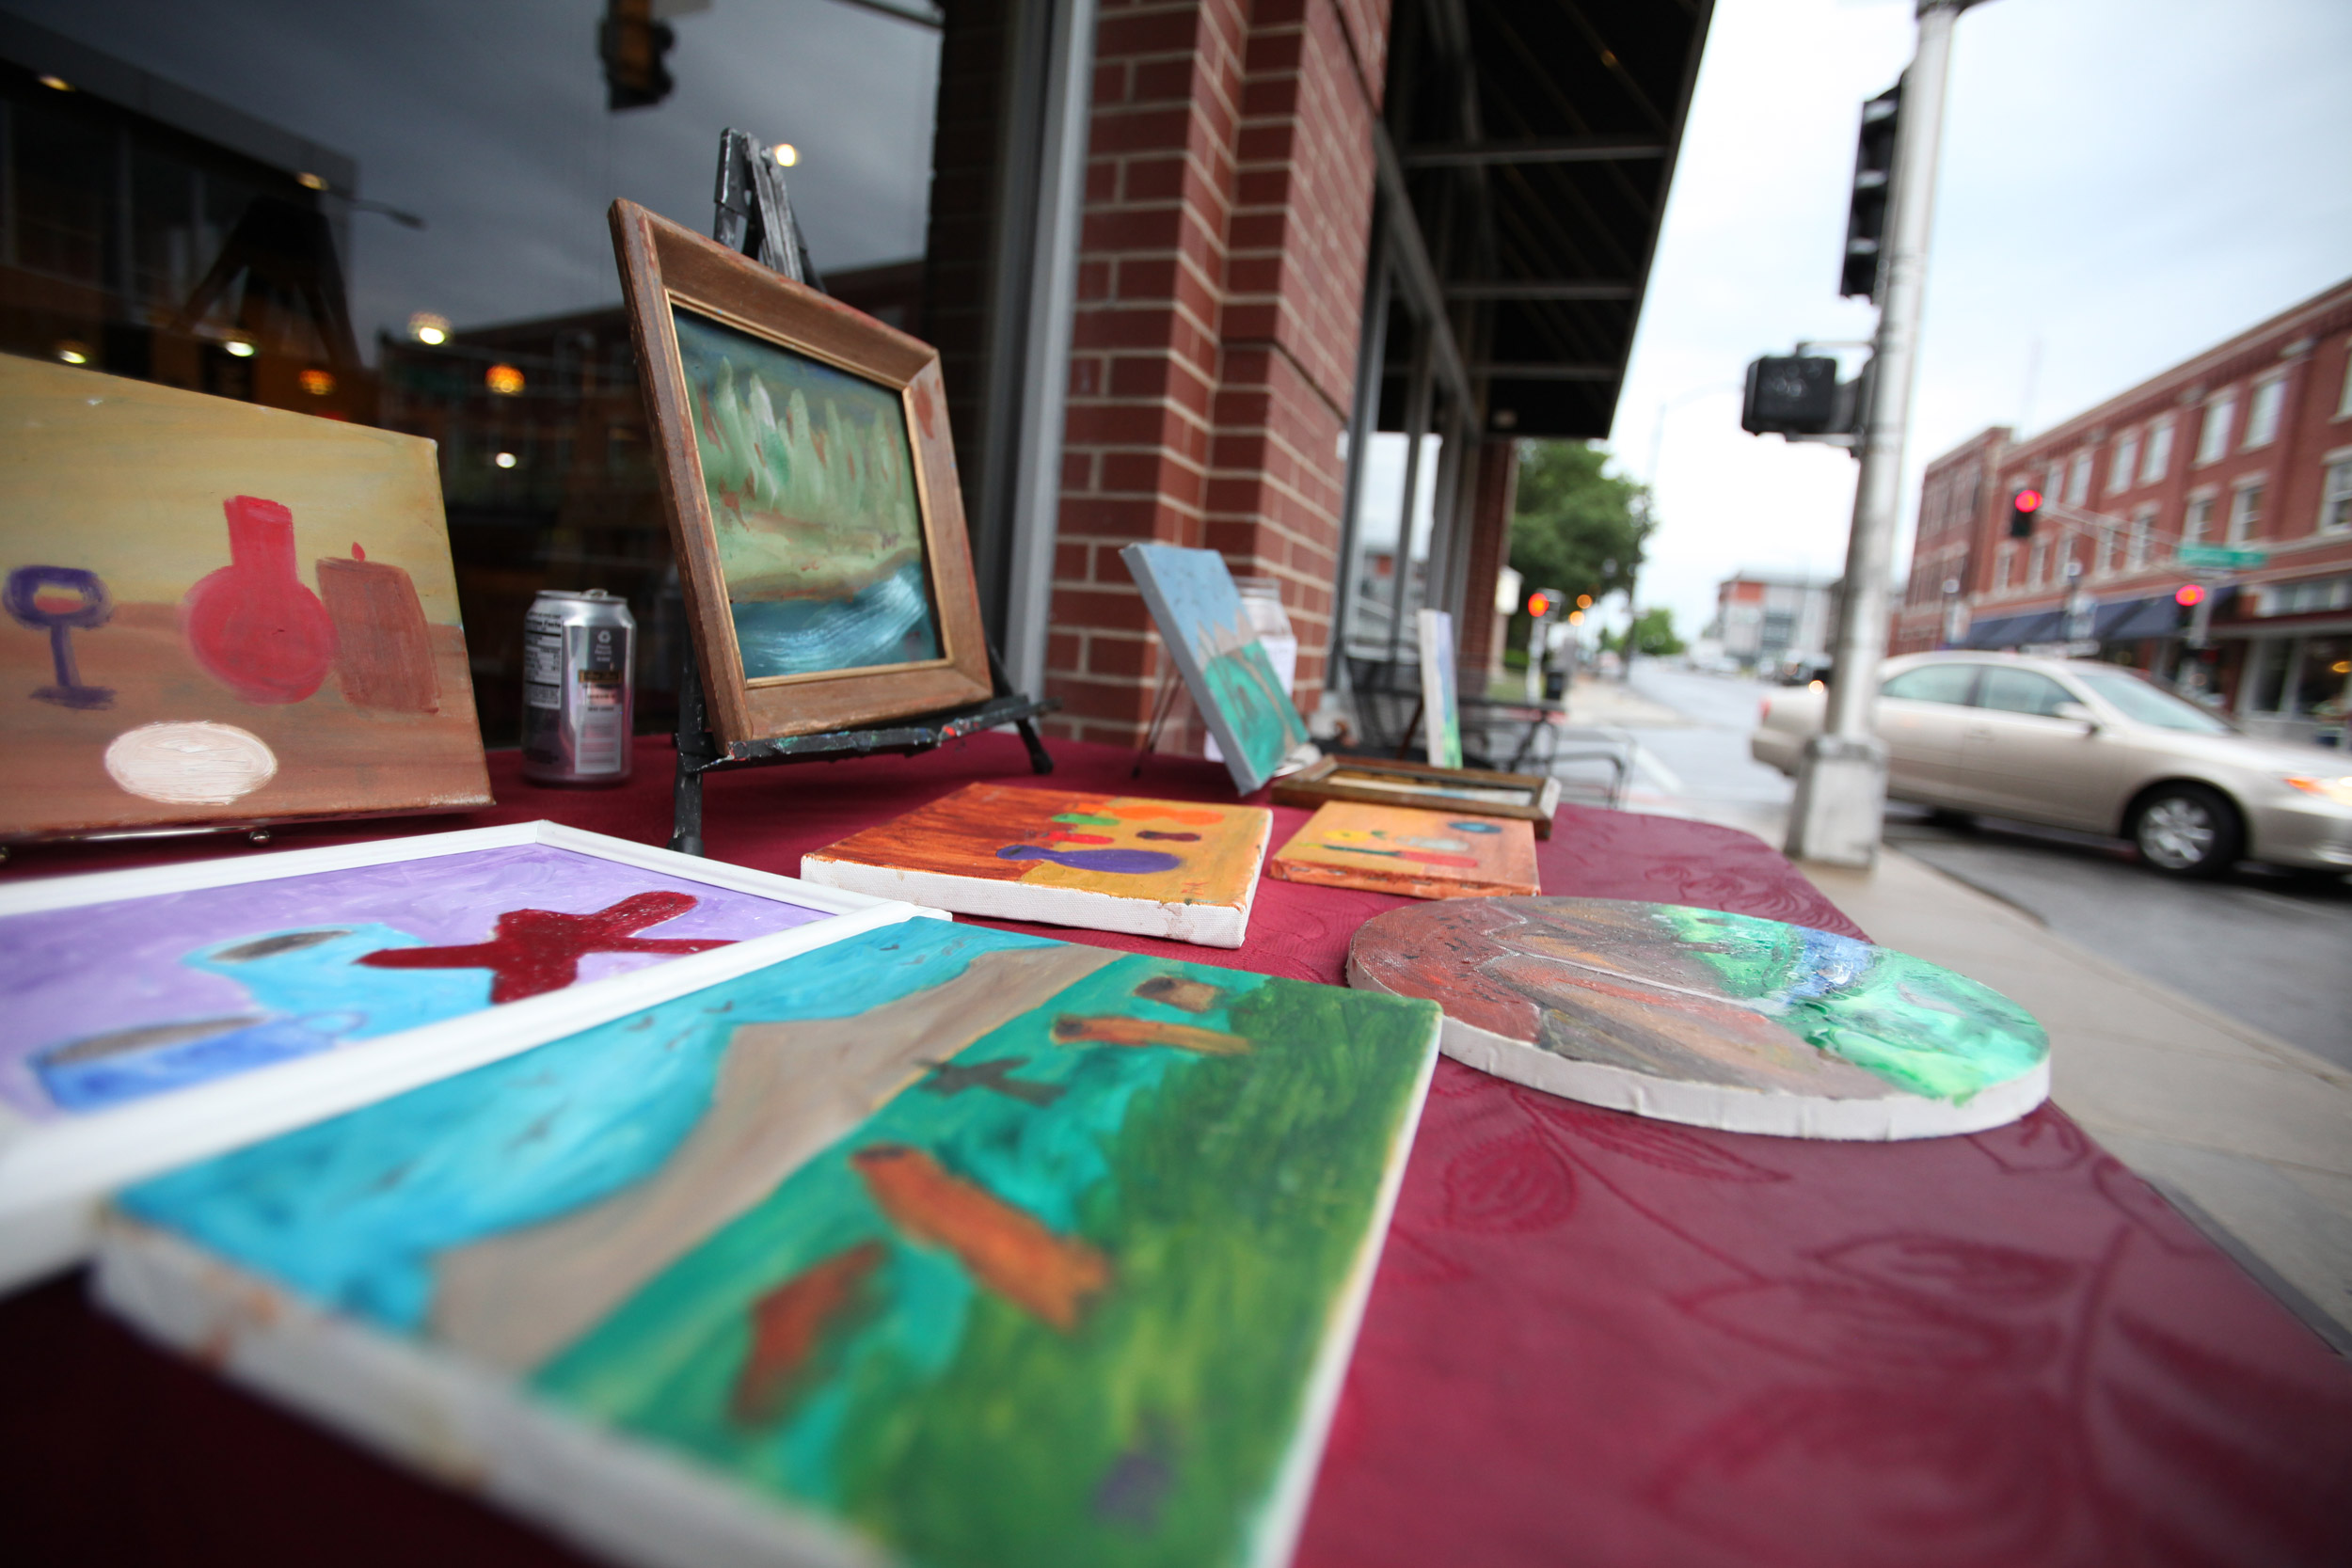 Russell's art, on display on Walnut Street in Springfield. Russell paints primarily oils on canvas.